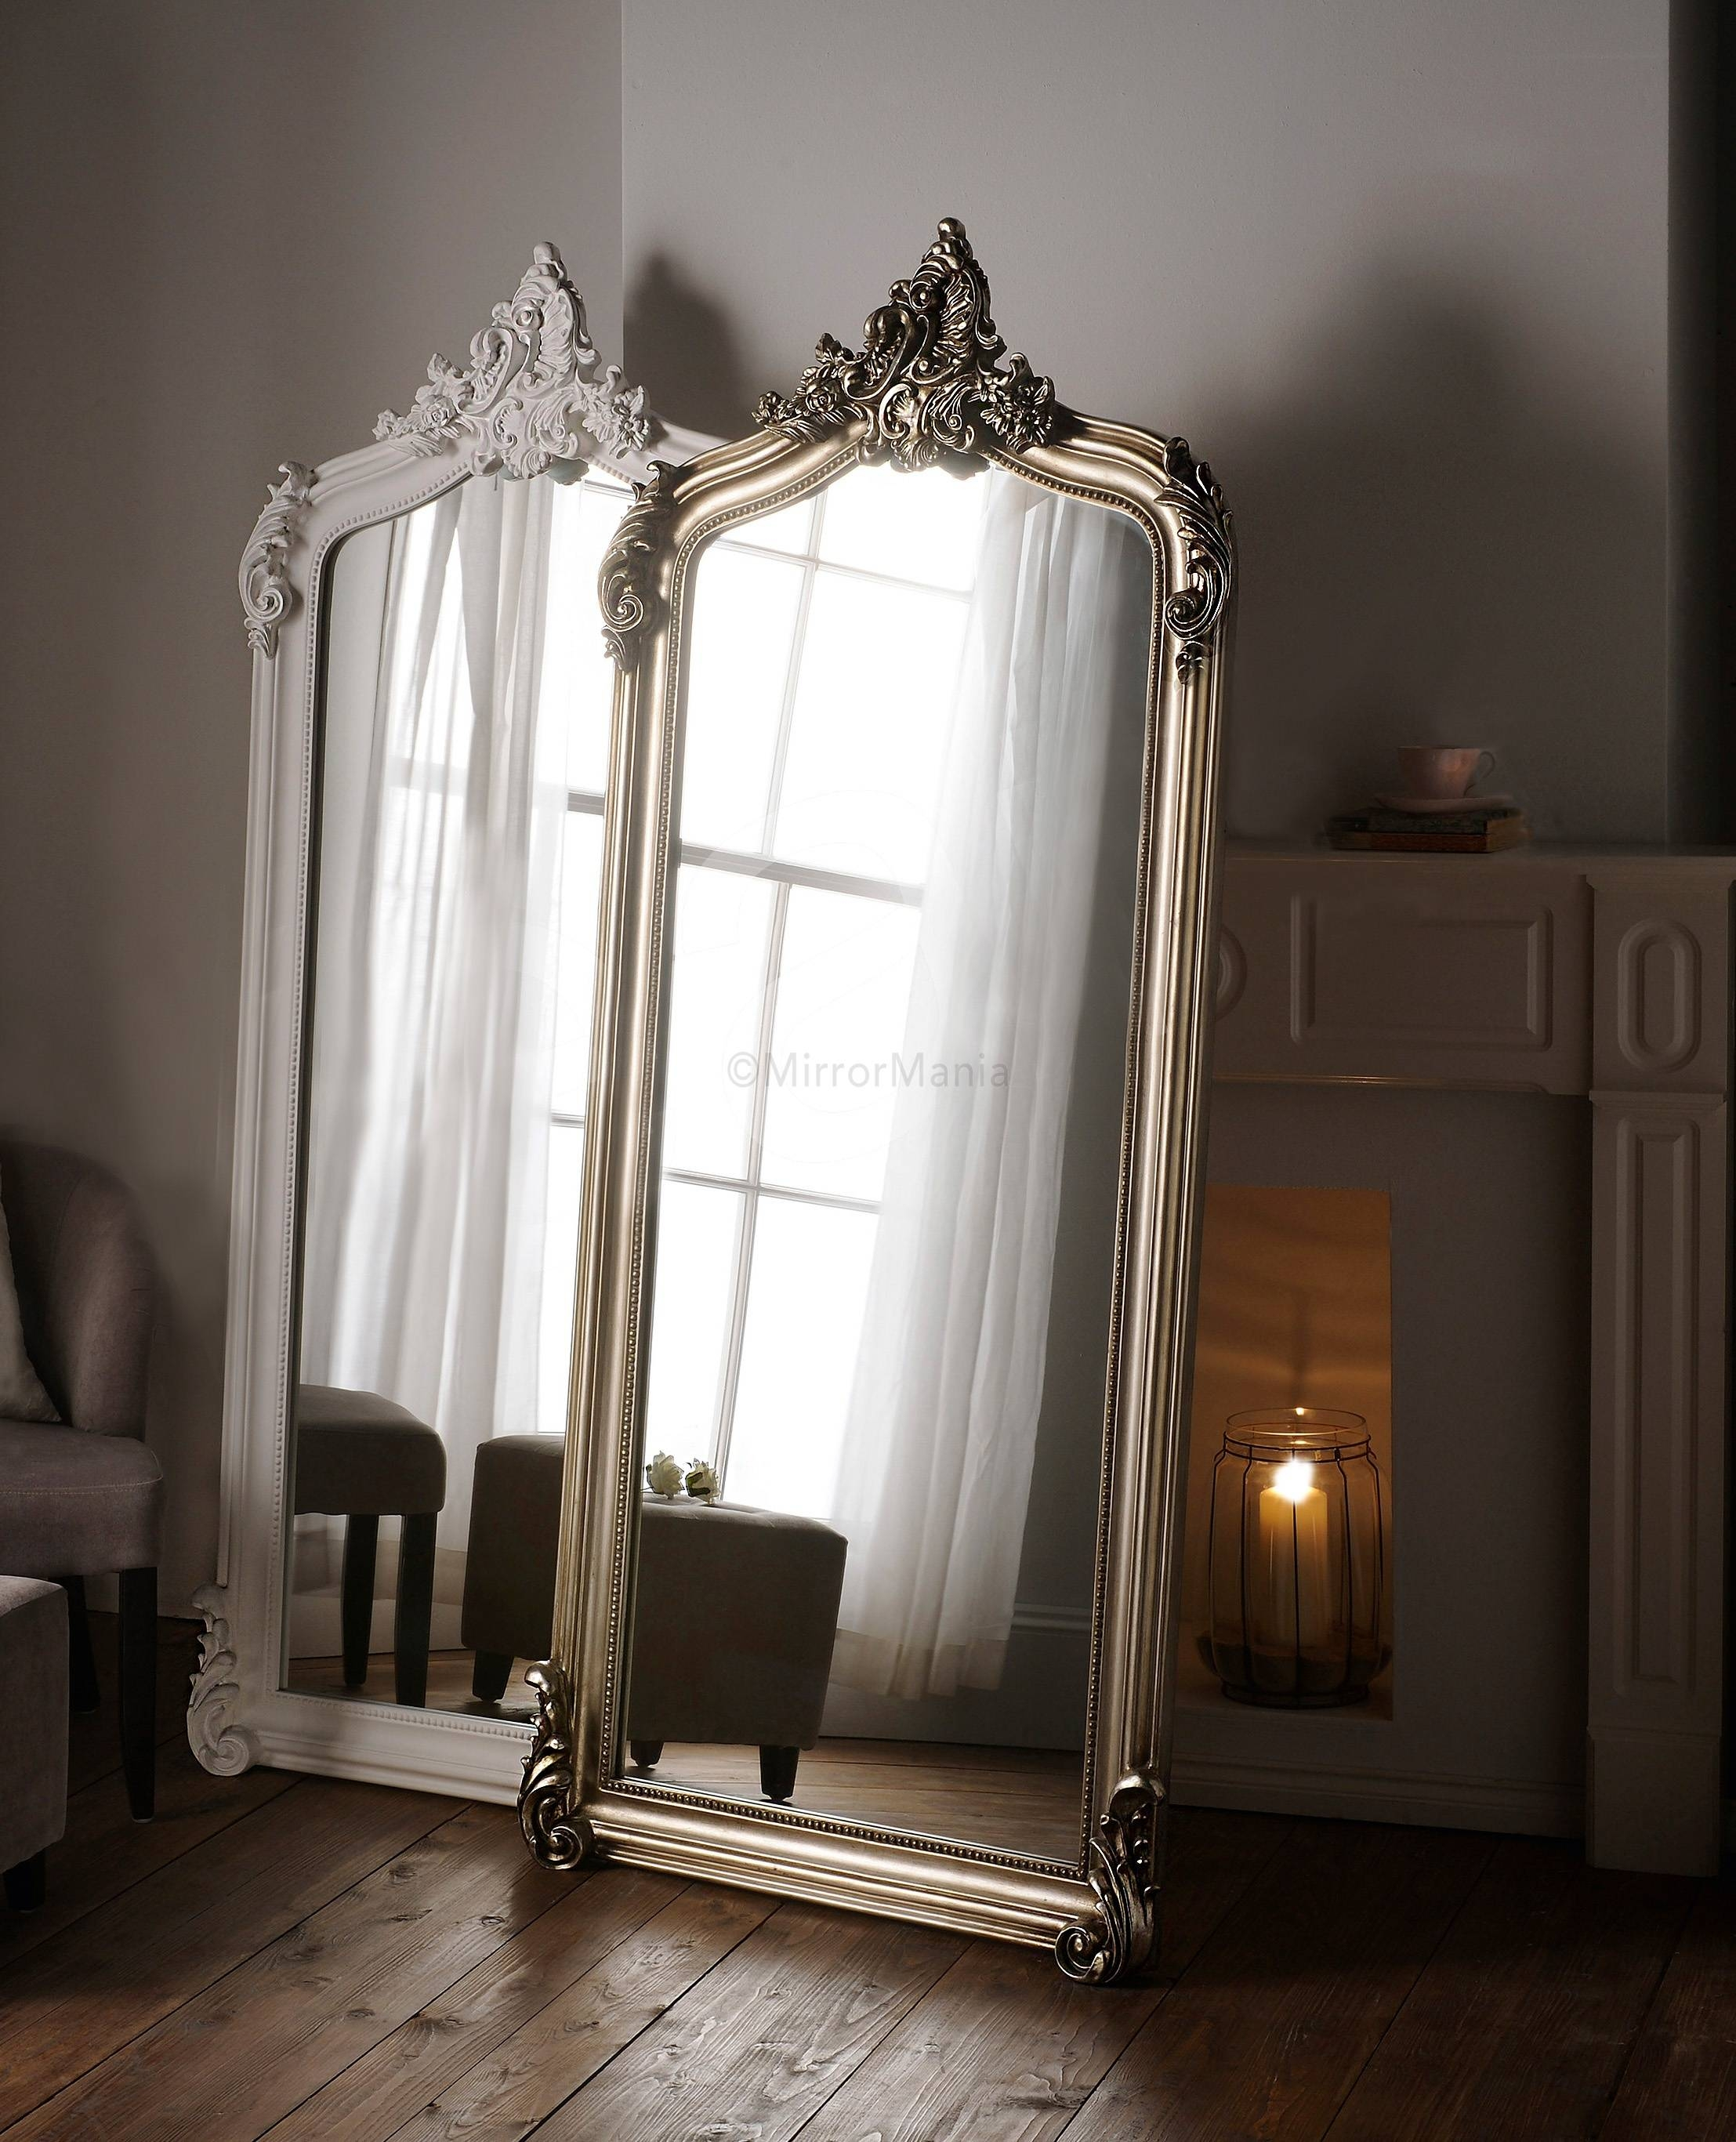 Ornate Swept Framed Full Length Mirror pertaining to Full Length Ornate Mirrors (Image 12 of 15)